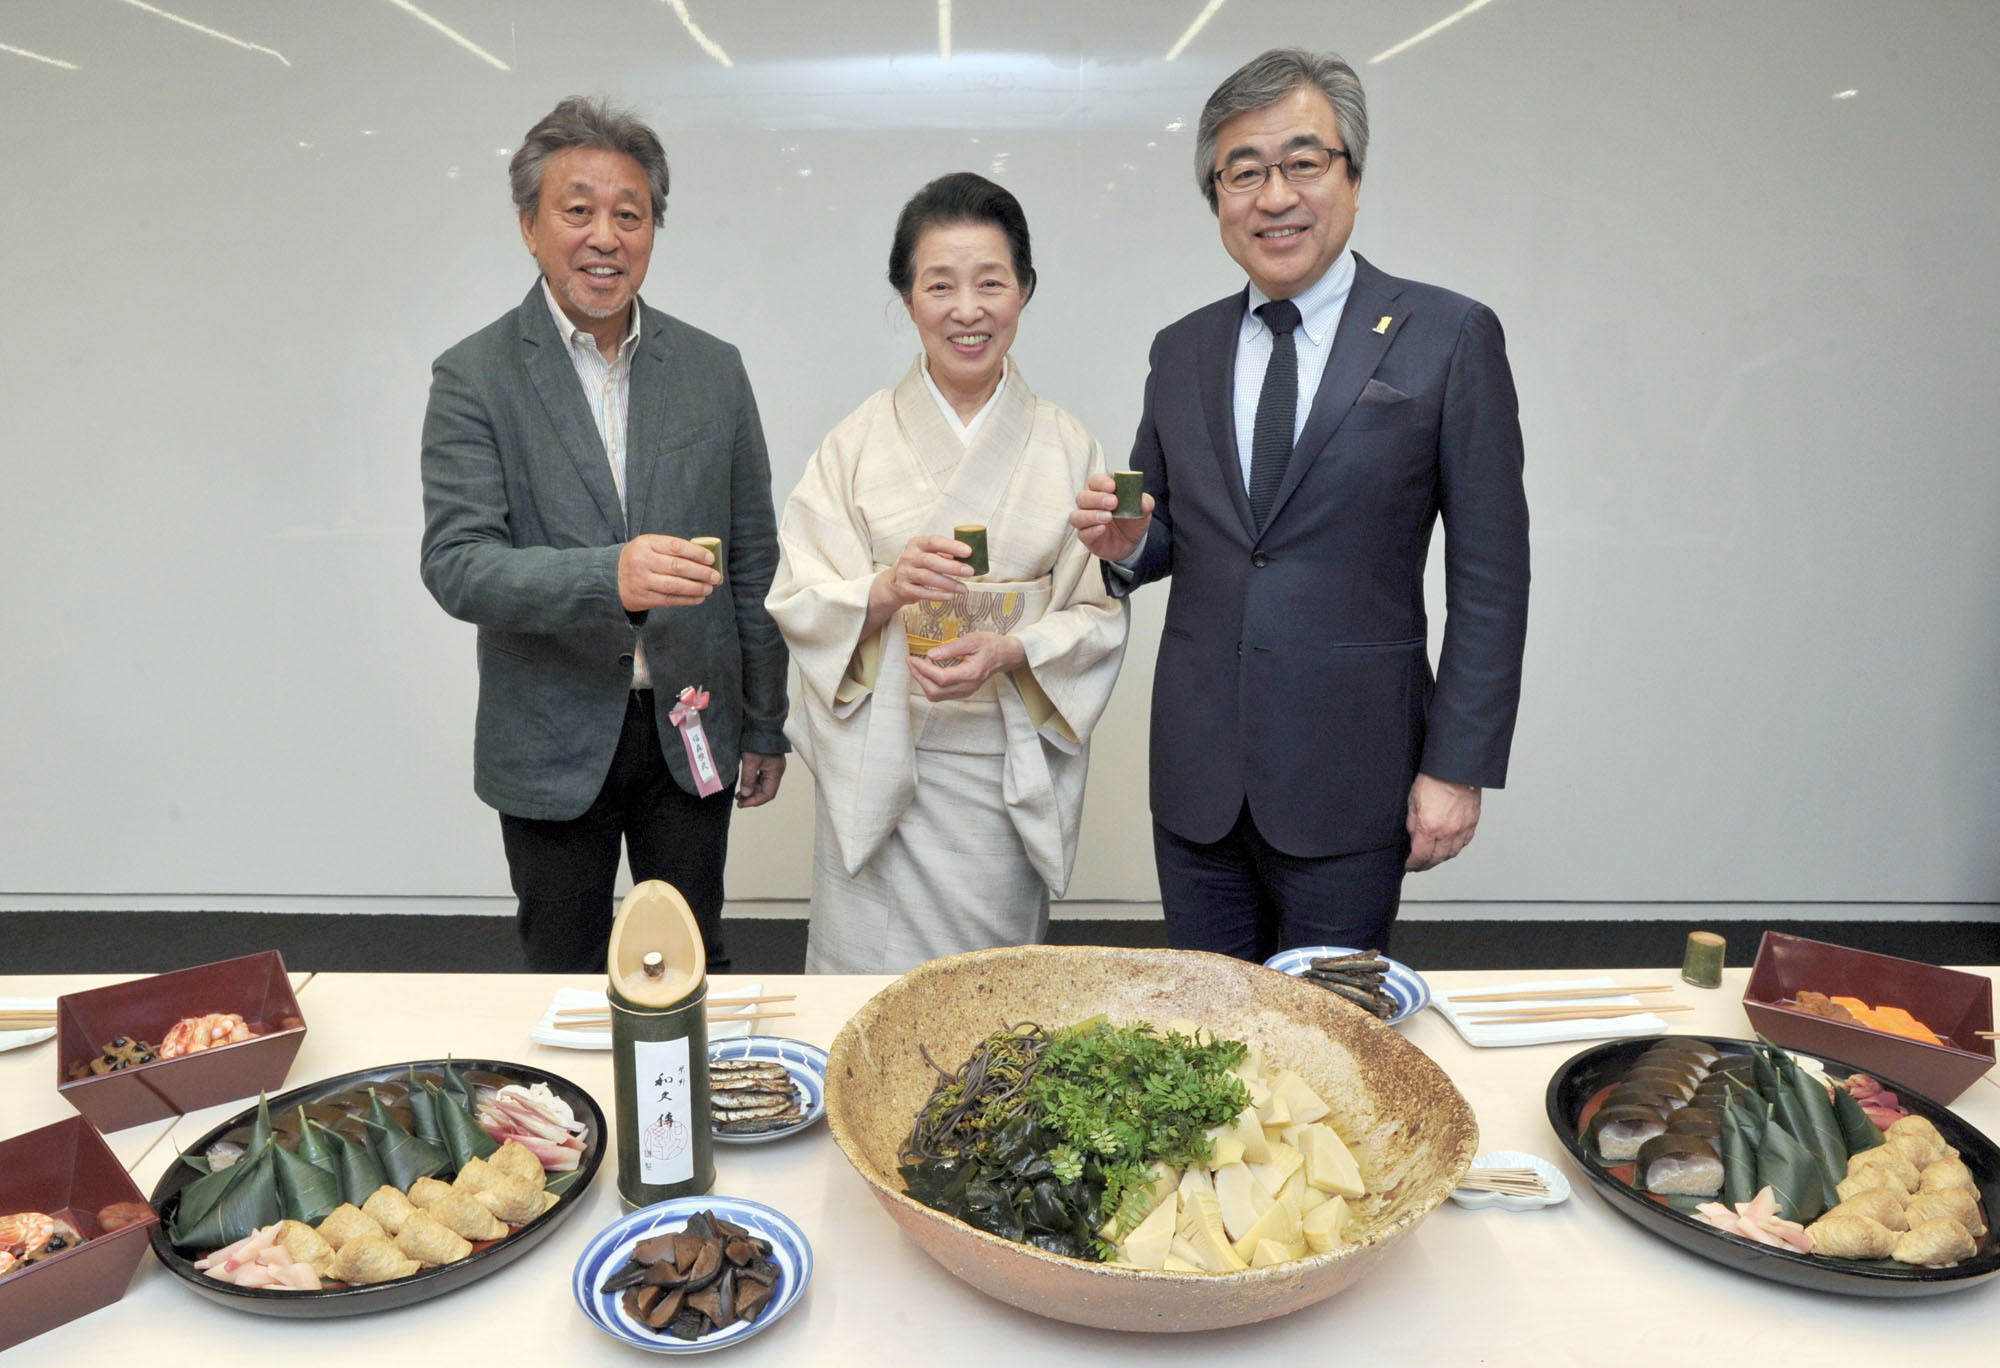 """(From left) Exhibitors from Kyoto, ceramist Masatake Fukumori and Murasakino Wakuden President Aya Kuwamura, share a toast with Managing Executive Officer and General Manager of the Mitsukoshi Nihombashi Store, Yoji Naka, at an opening ceremony for the """"Wakuden, Work & Pleasure"""" exhibition, which runs until May 10, at Gallery Life Mining in the Mitsukoshi Nihombashi Store on April 13. 